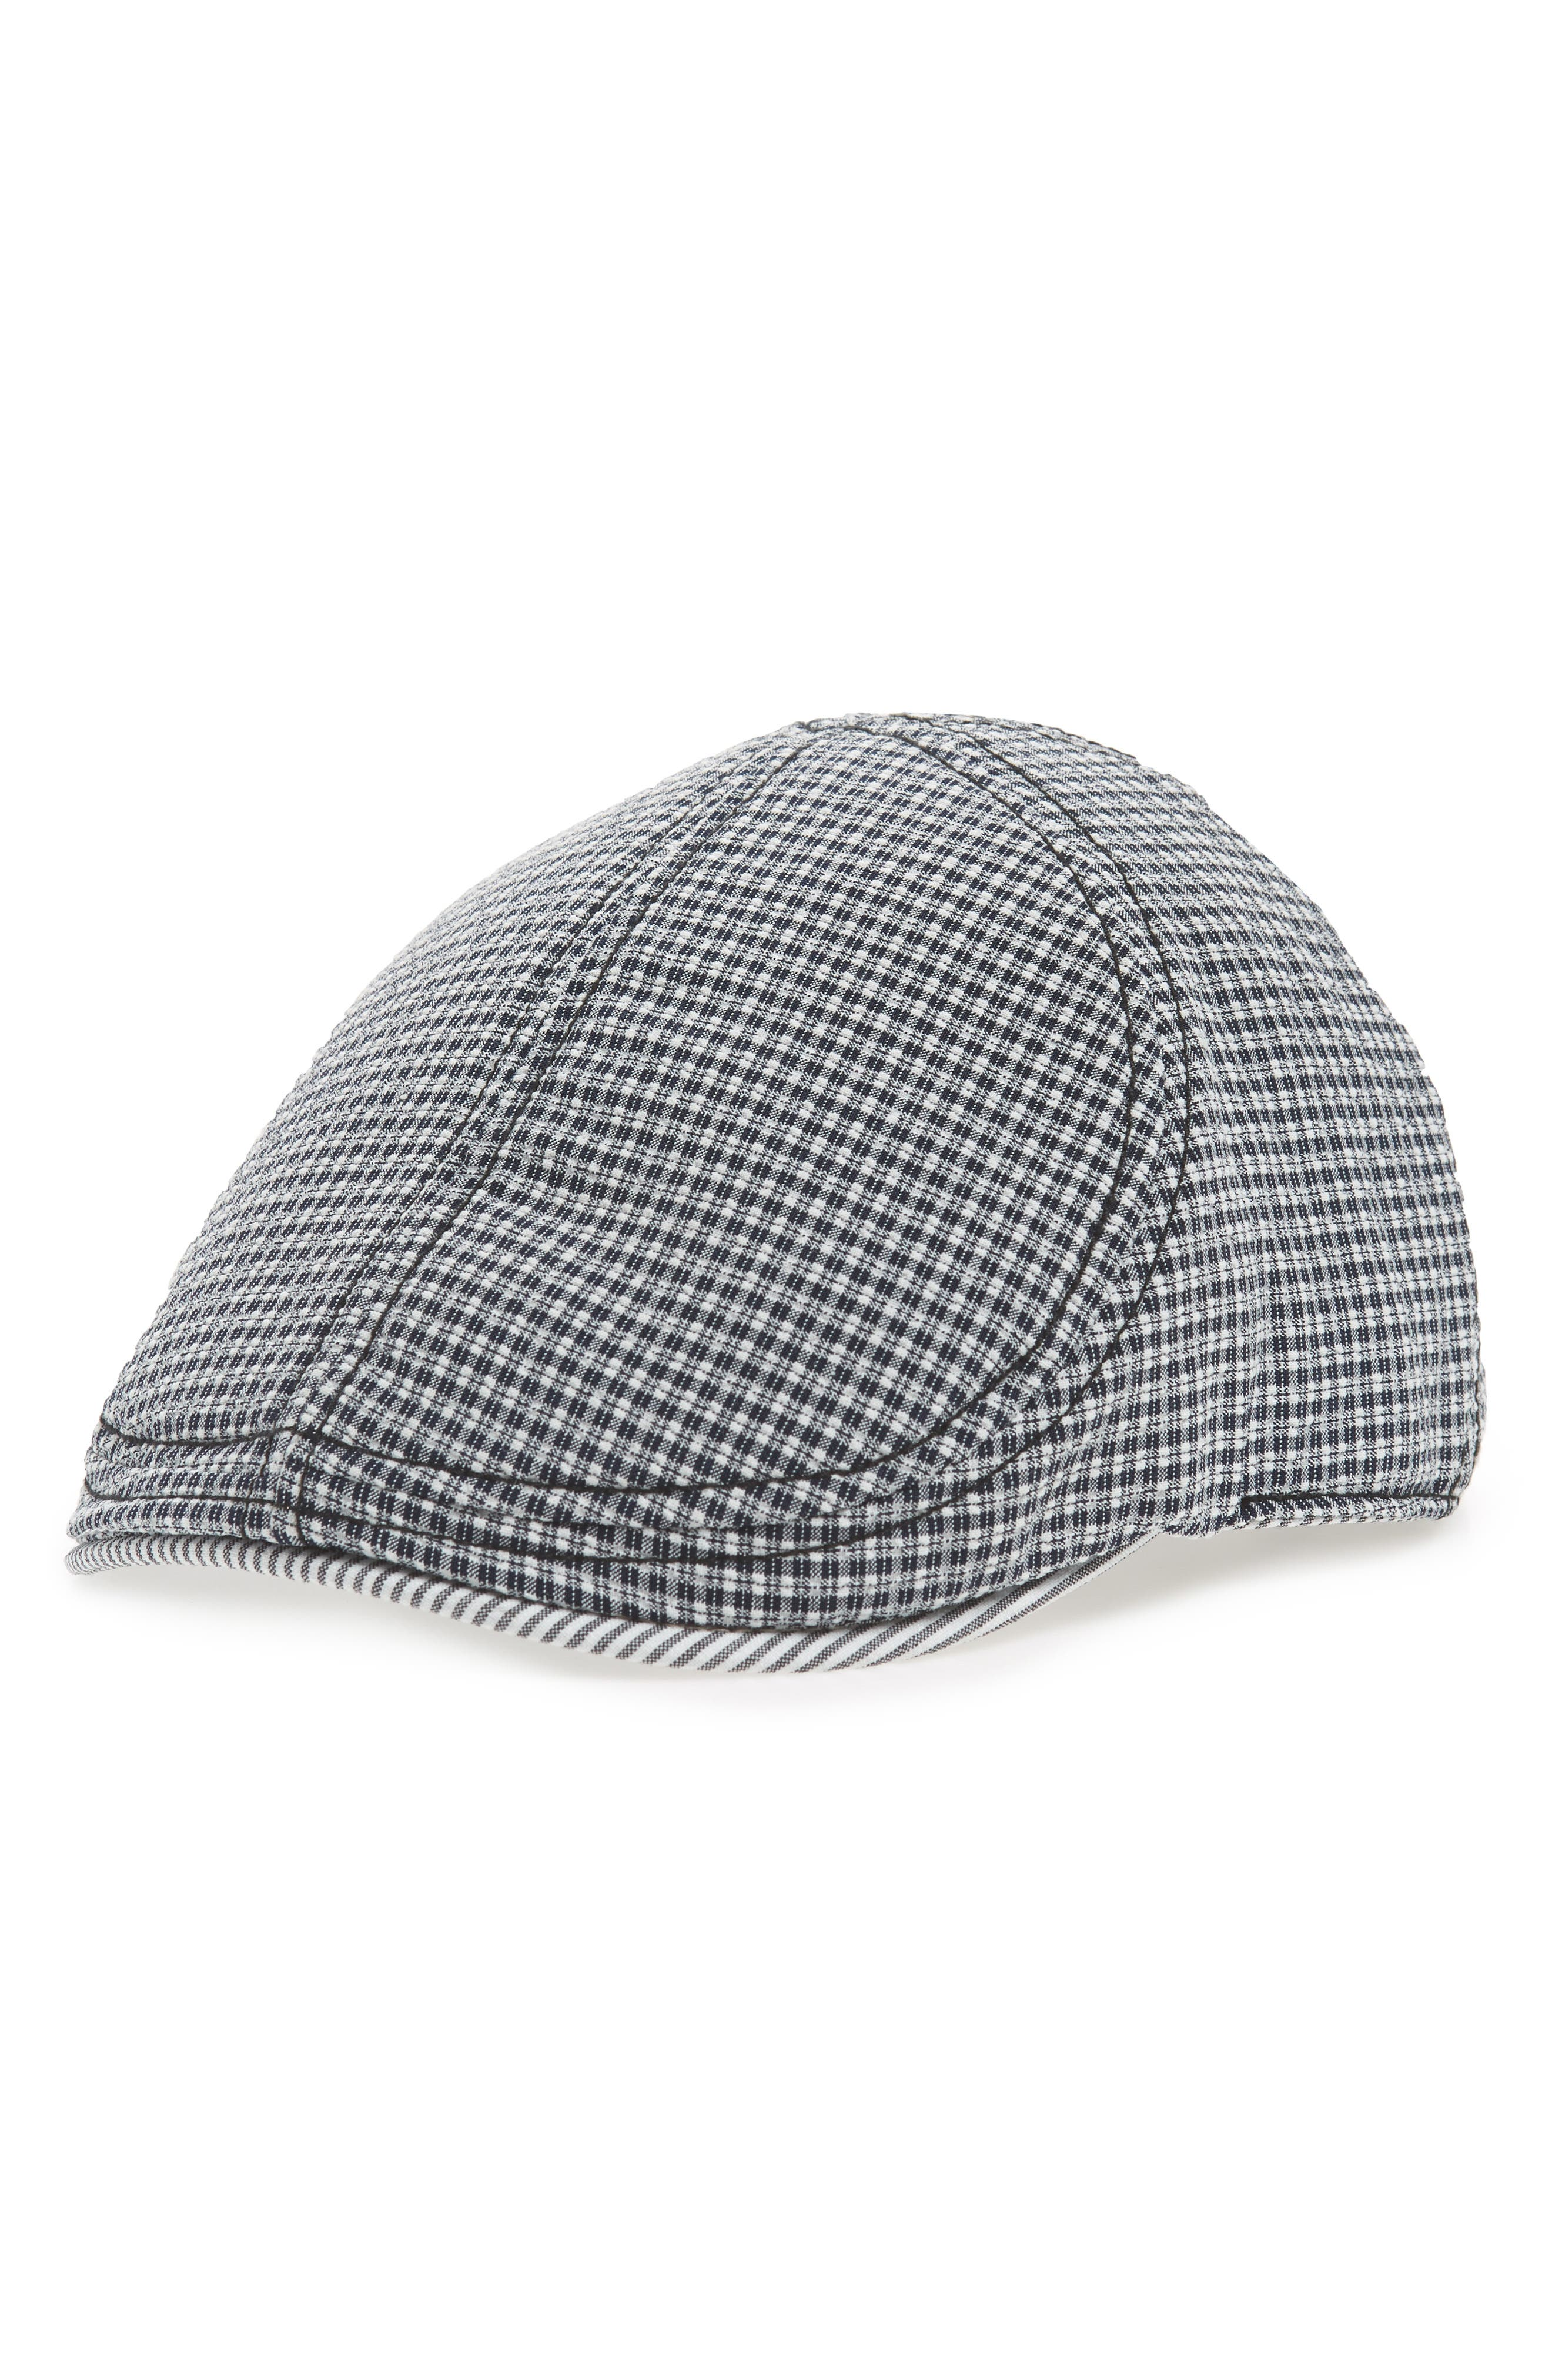 Fridays Driving Cap,                         Main,                         color, Gray